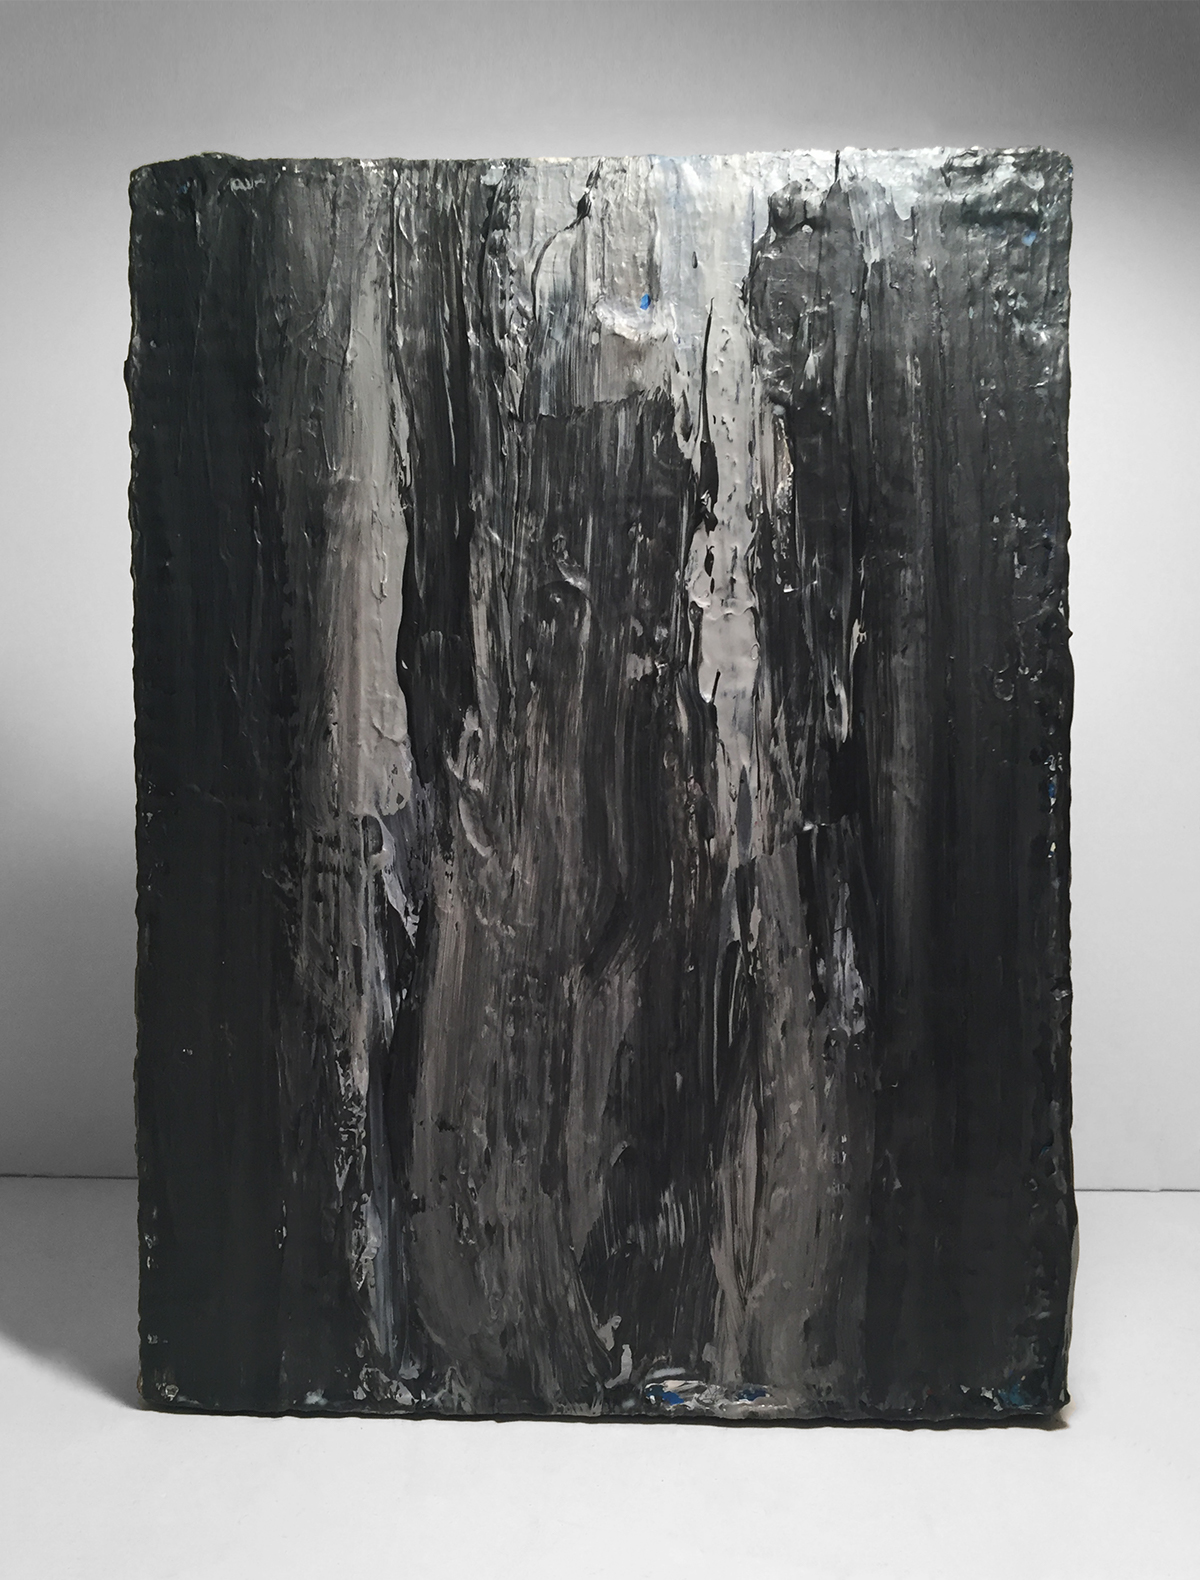 STUDY FOR A WATERFALL   Acrylic, canvas  12 x 9 Inches